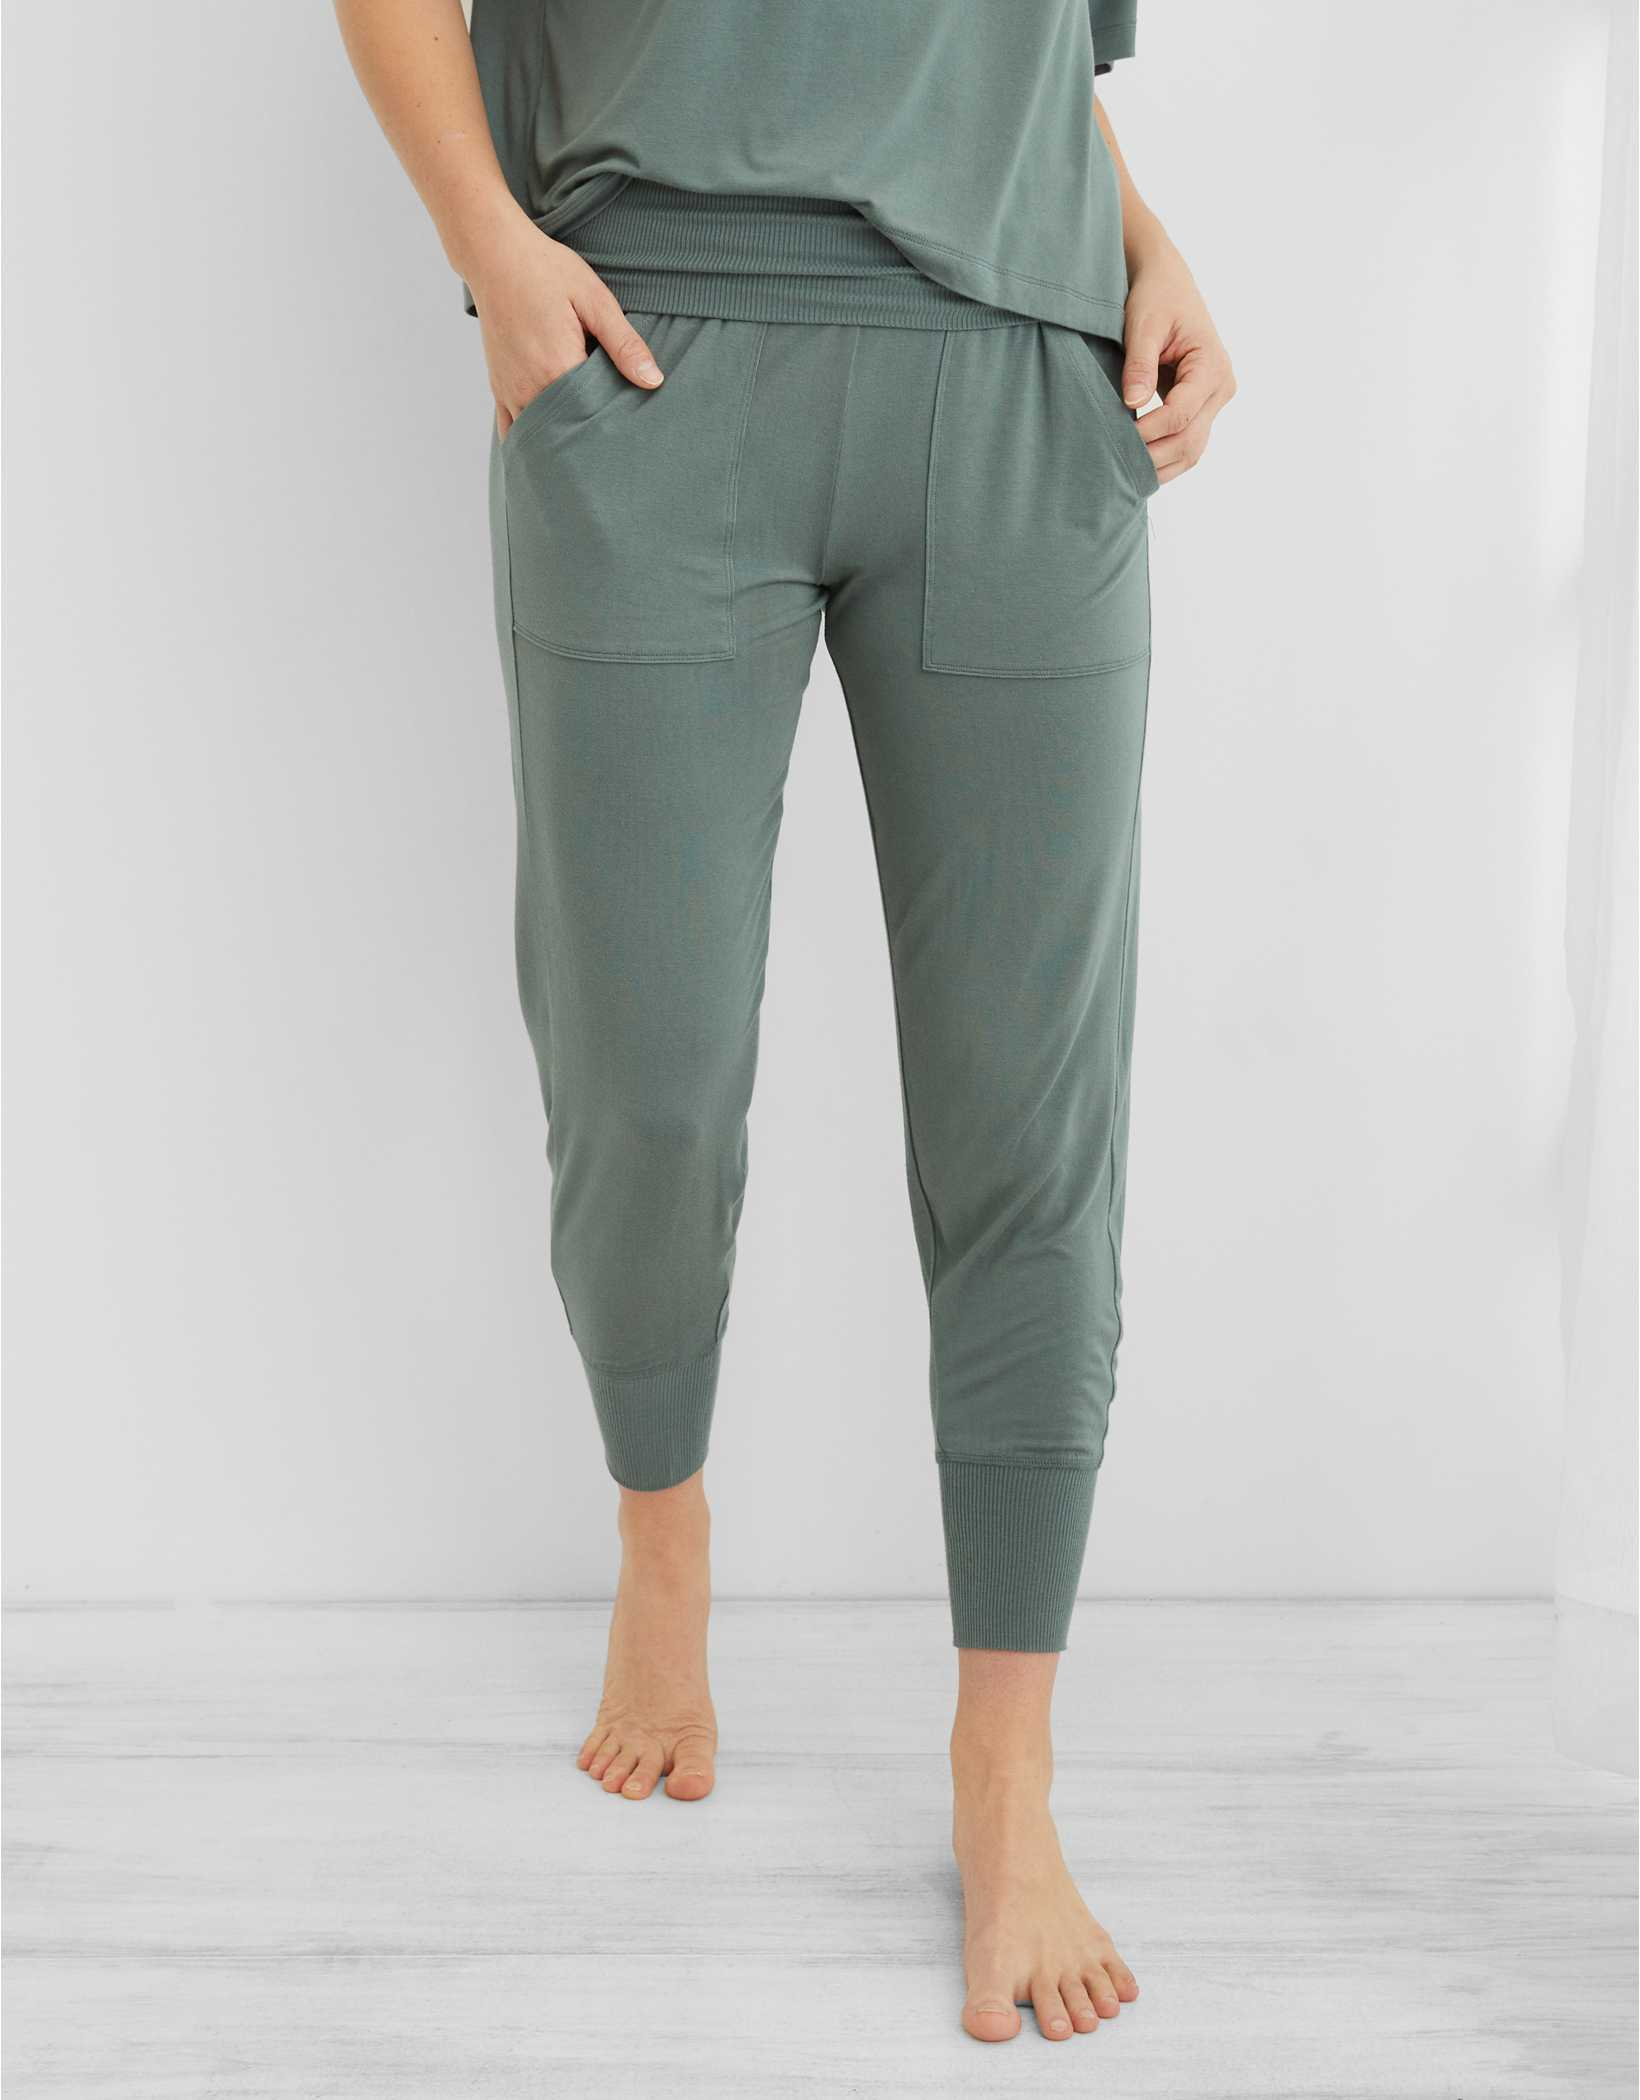 Aerie Real Soft® Foldover Jogger